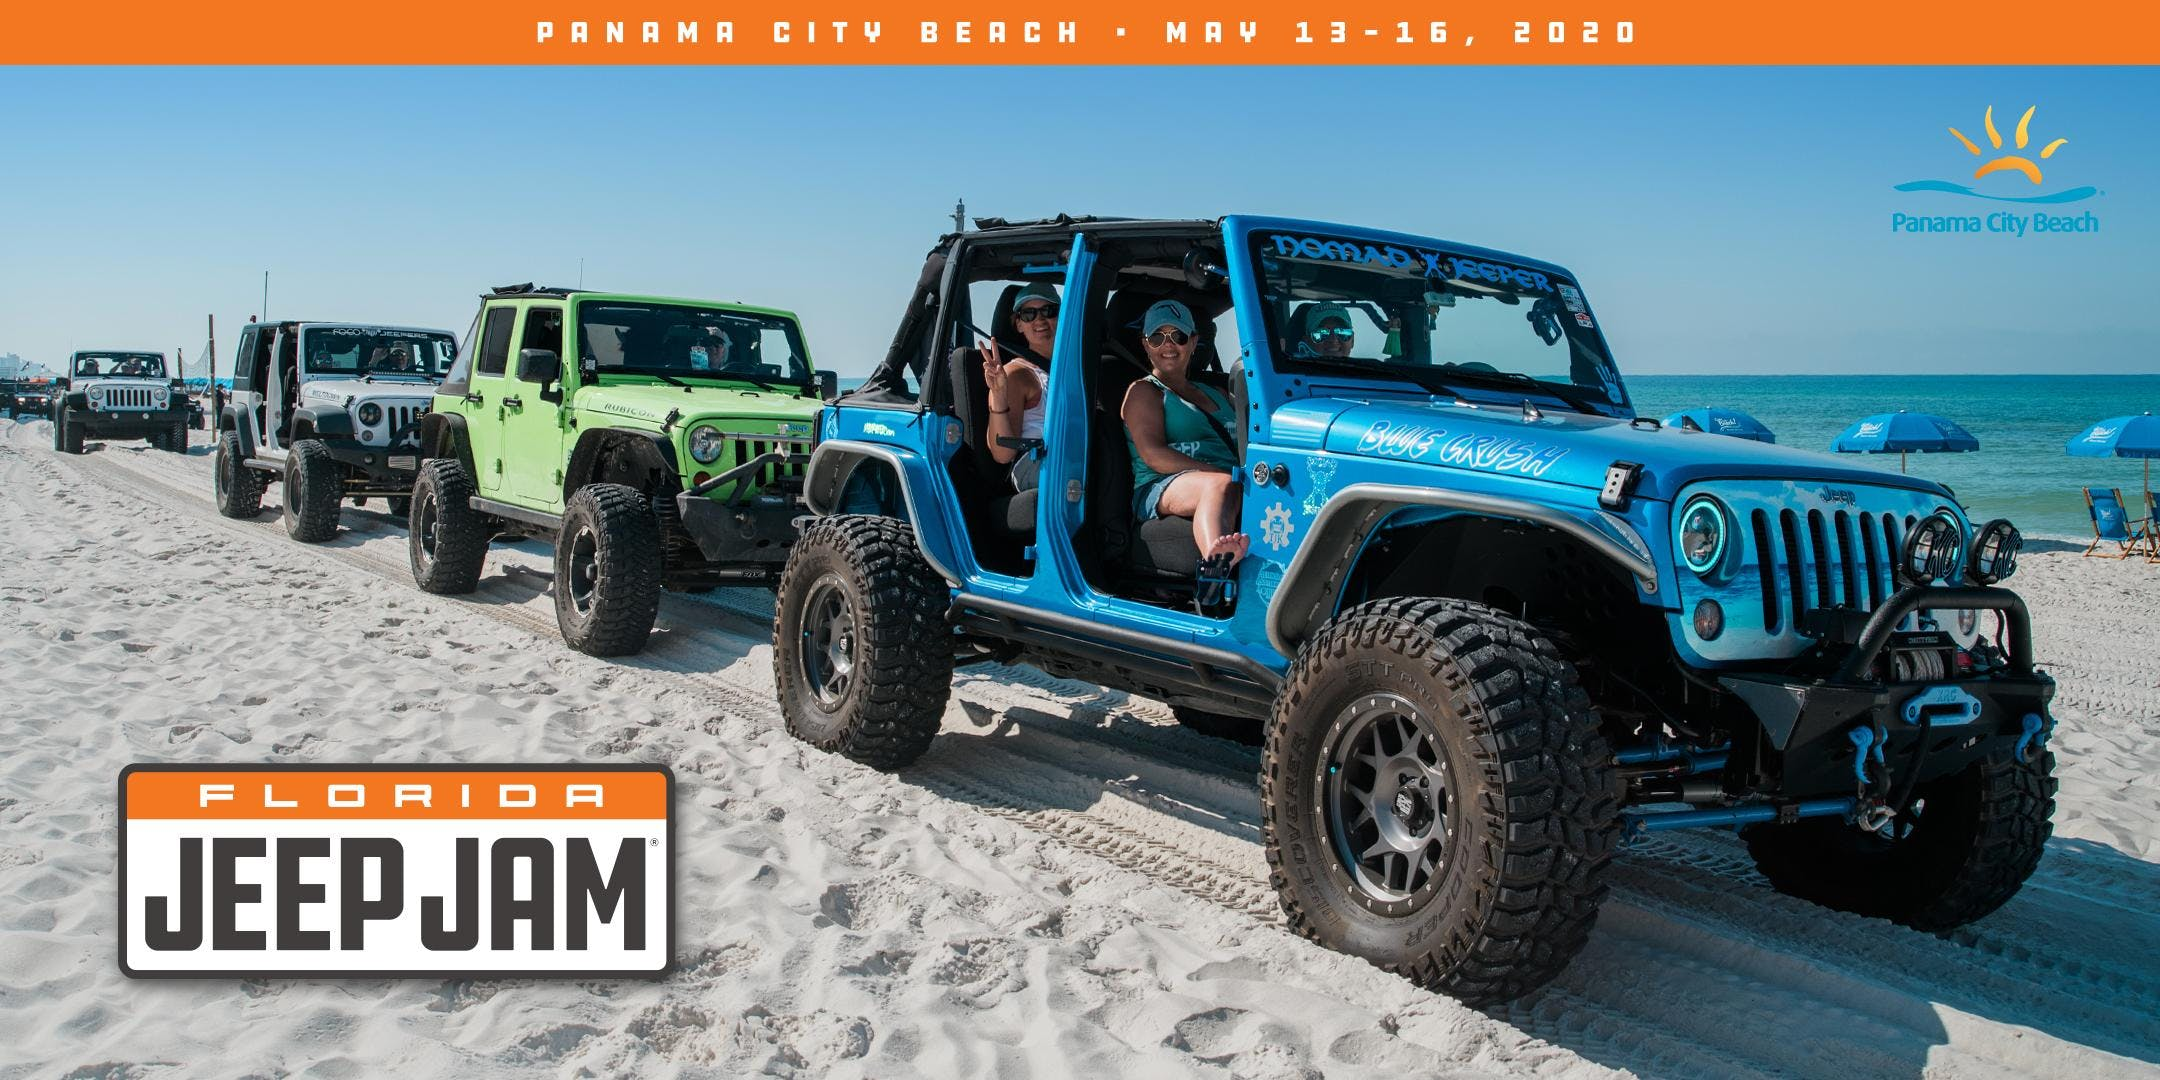 FLORIDA JEEP JAM – Panama City Beach, Florida